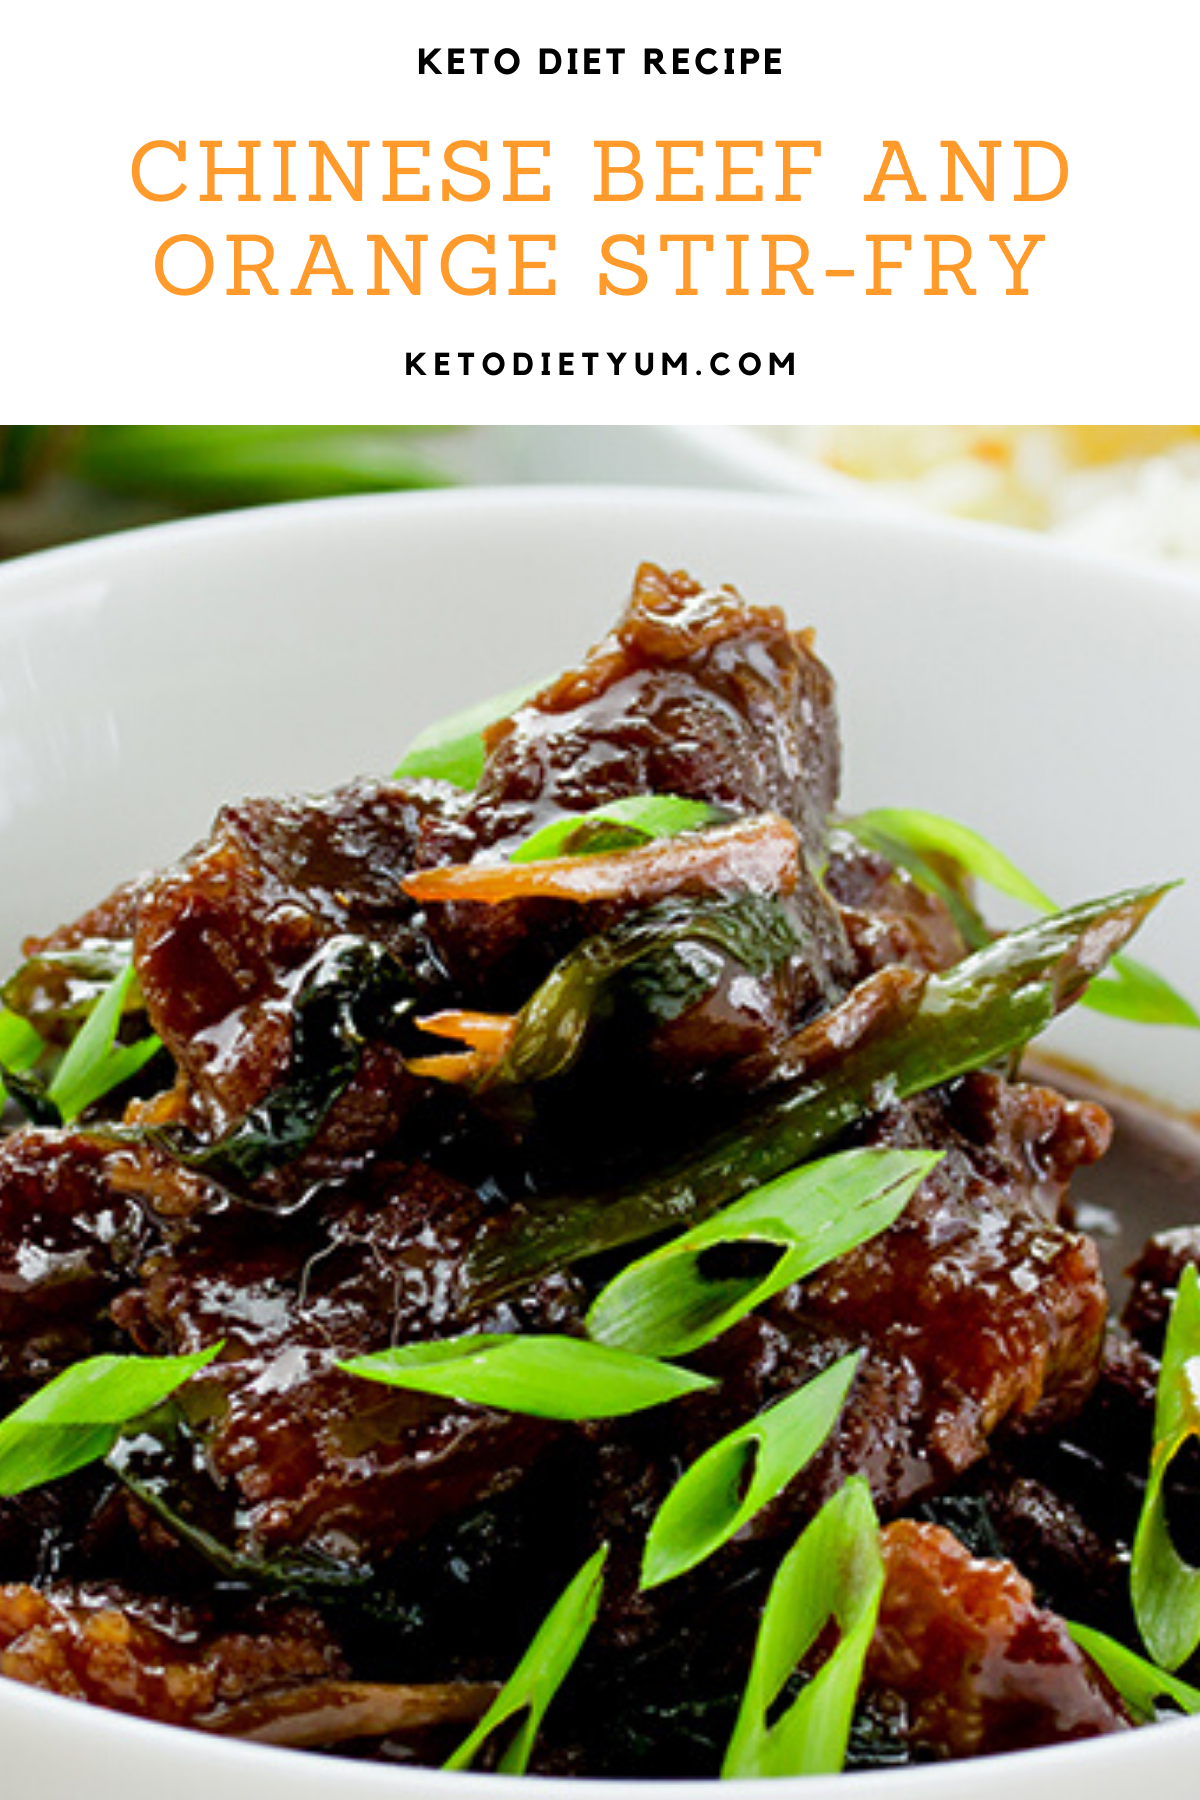 This Chinese beef stir-fry recipe is probably my favorite Keto recipe. Perfectly browned slices of steak coated with a tasty, thick and sticky sauce, yum! #ketodiet #ketorecipes #lowcarbrecipes